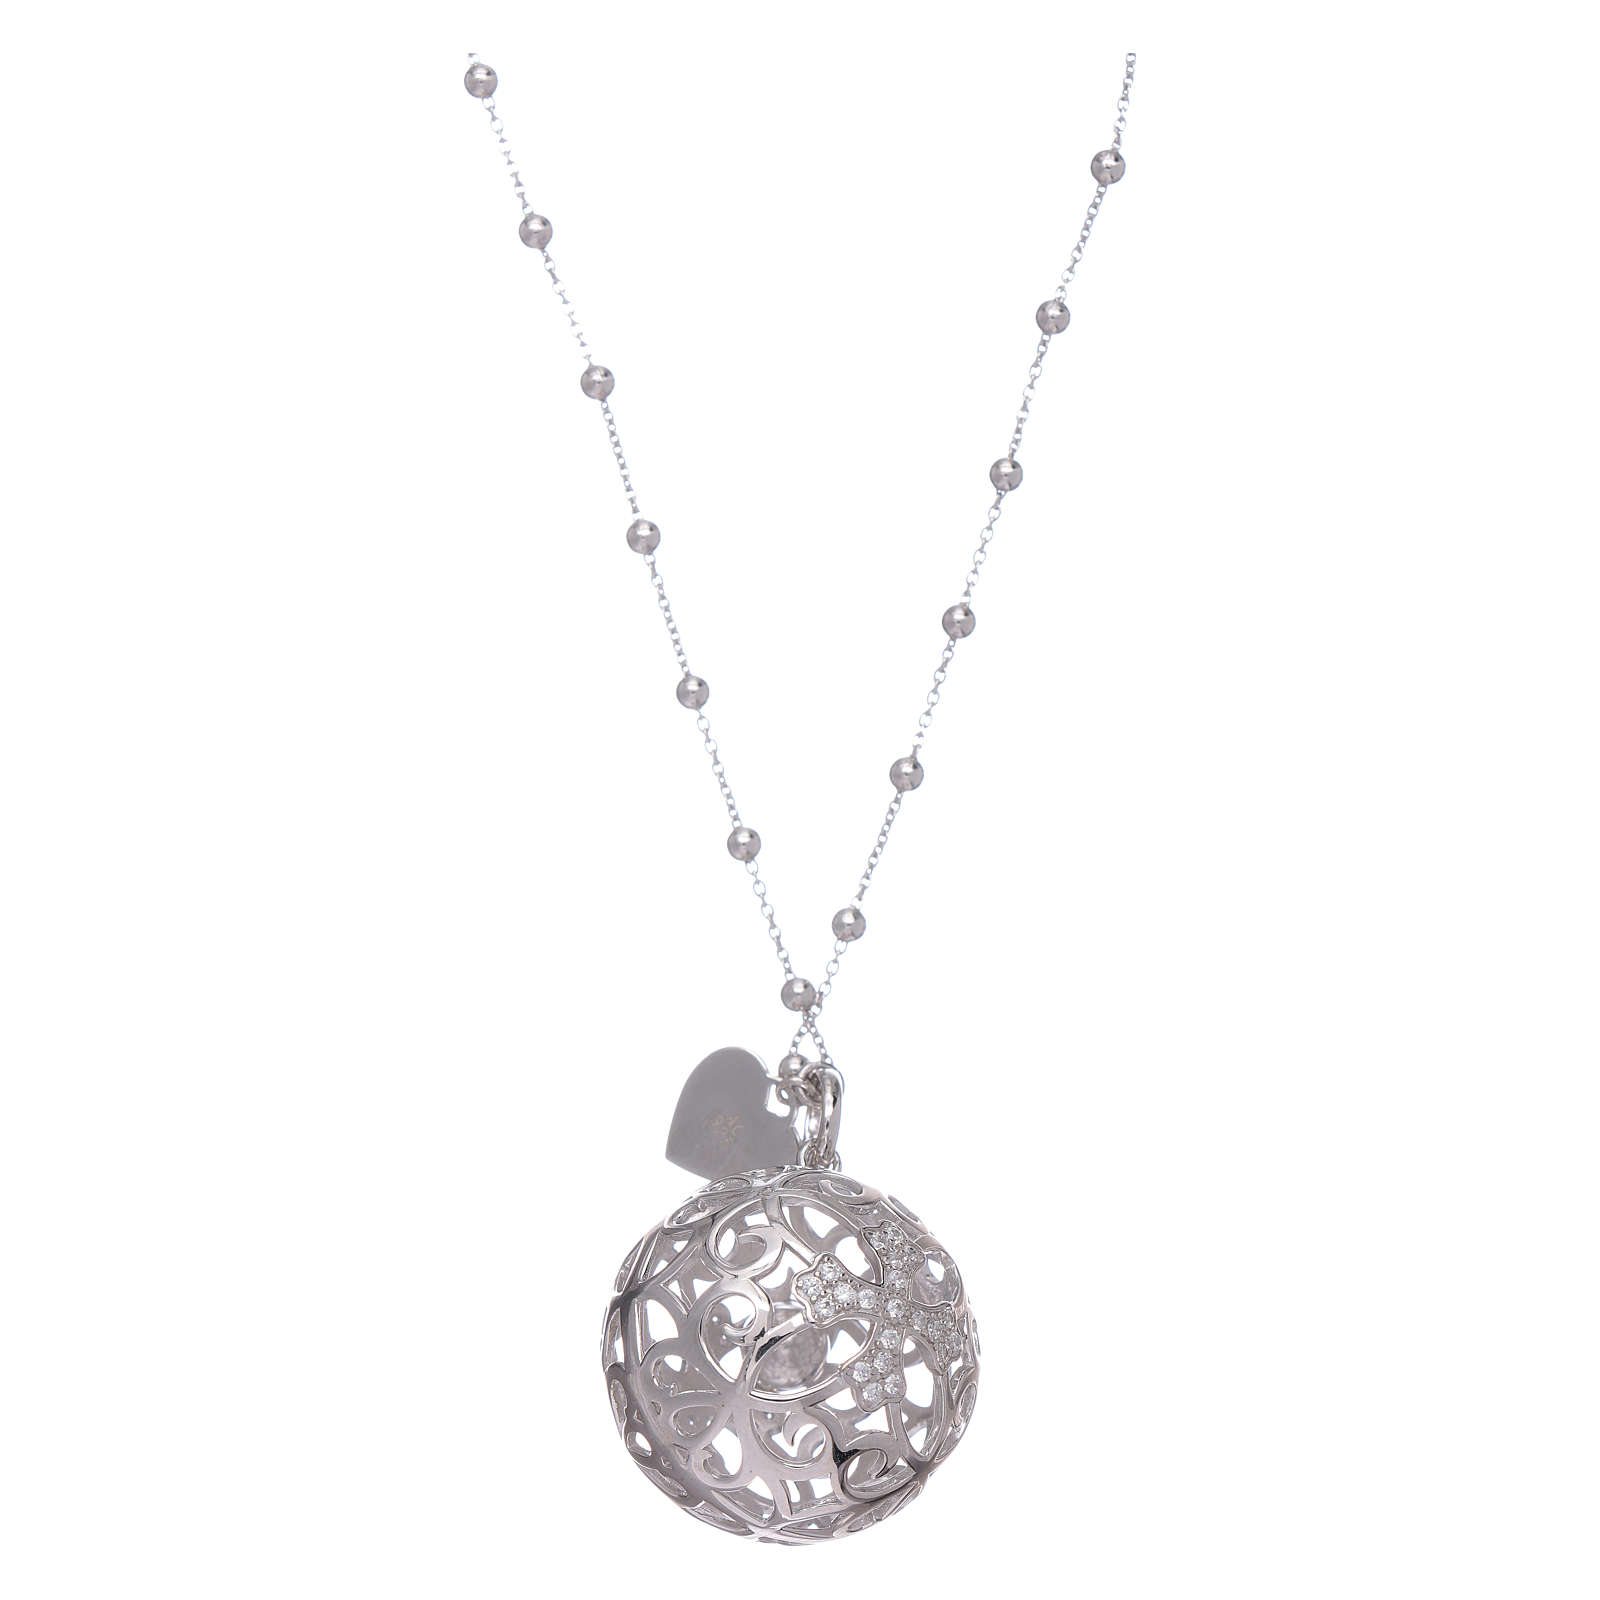 Amen necklace angel caller rosè with cross and zircons in 925 sterling silver 4